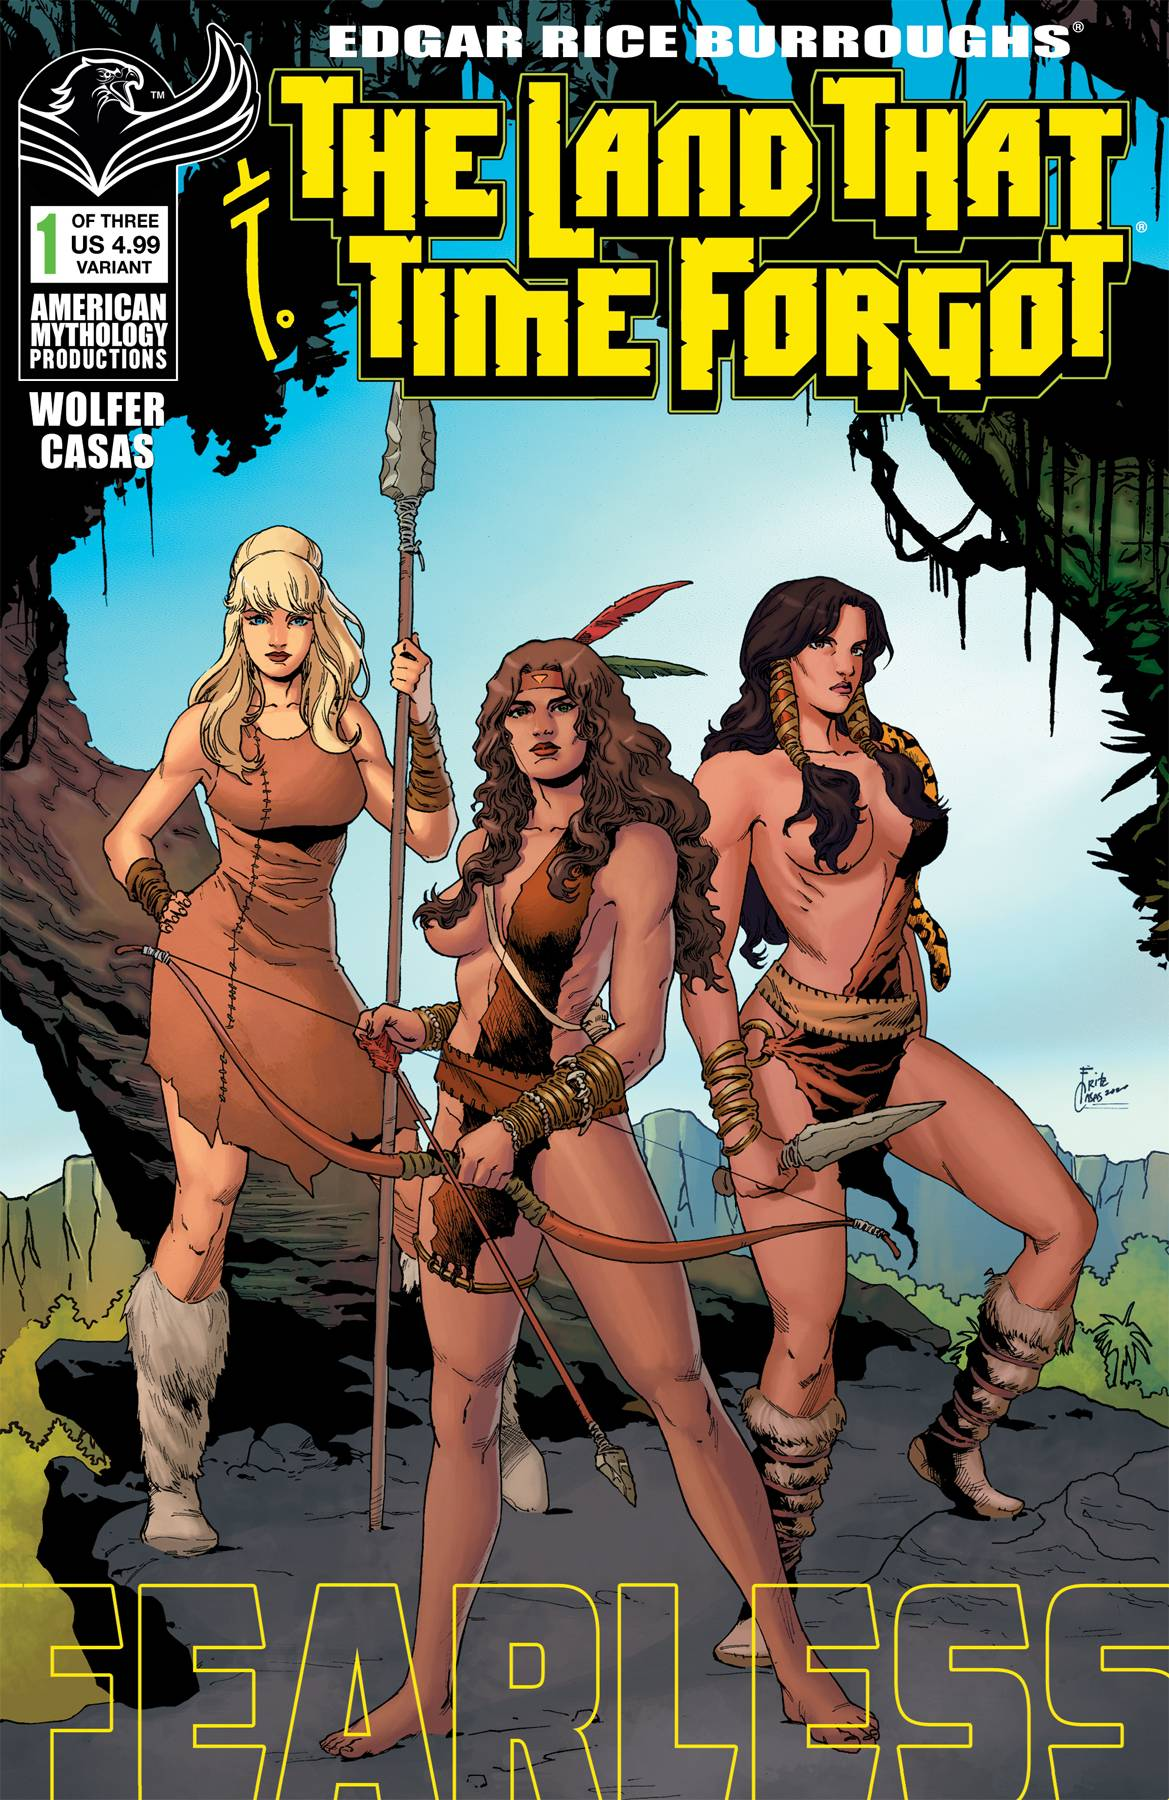 LAND THAT TIME FORGOT FEARLESS #1 CVR B WOLFER (RES)